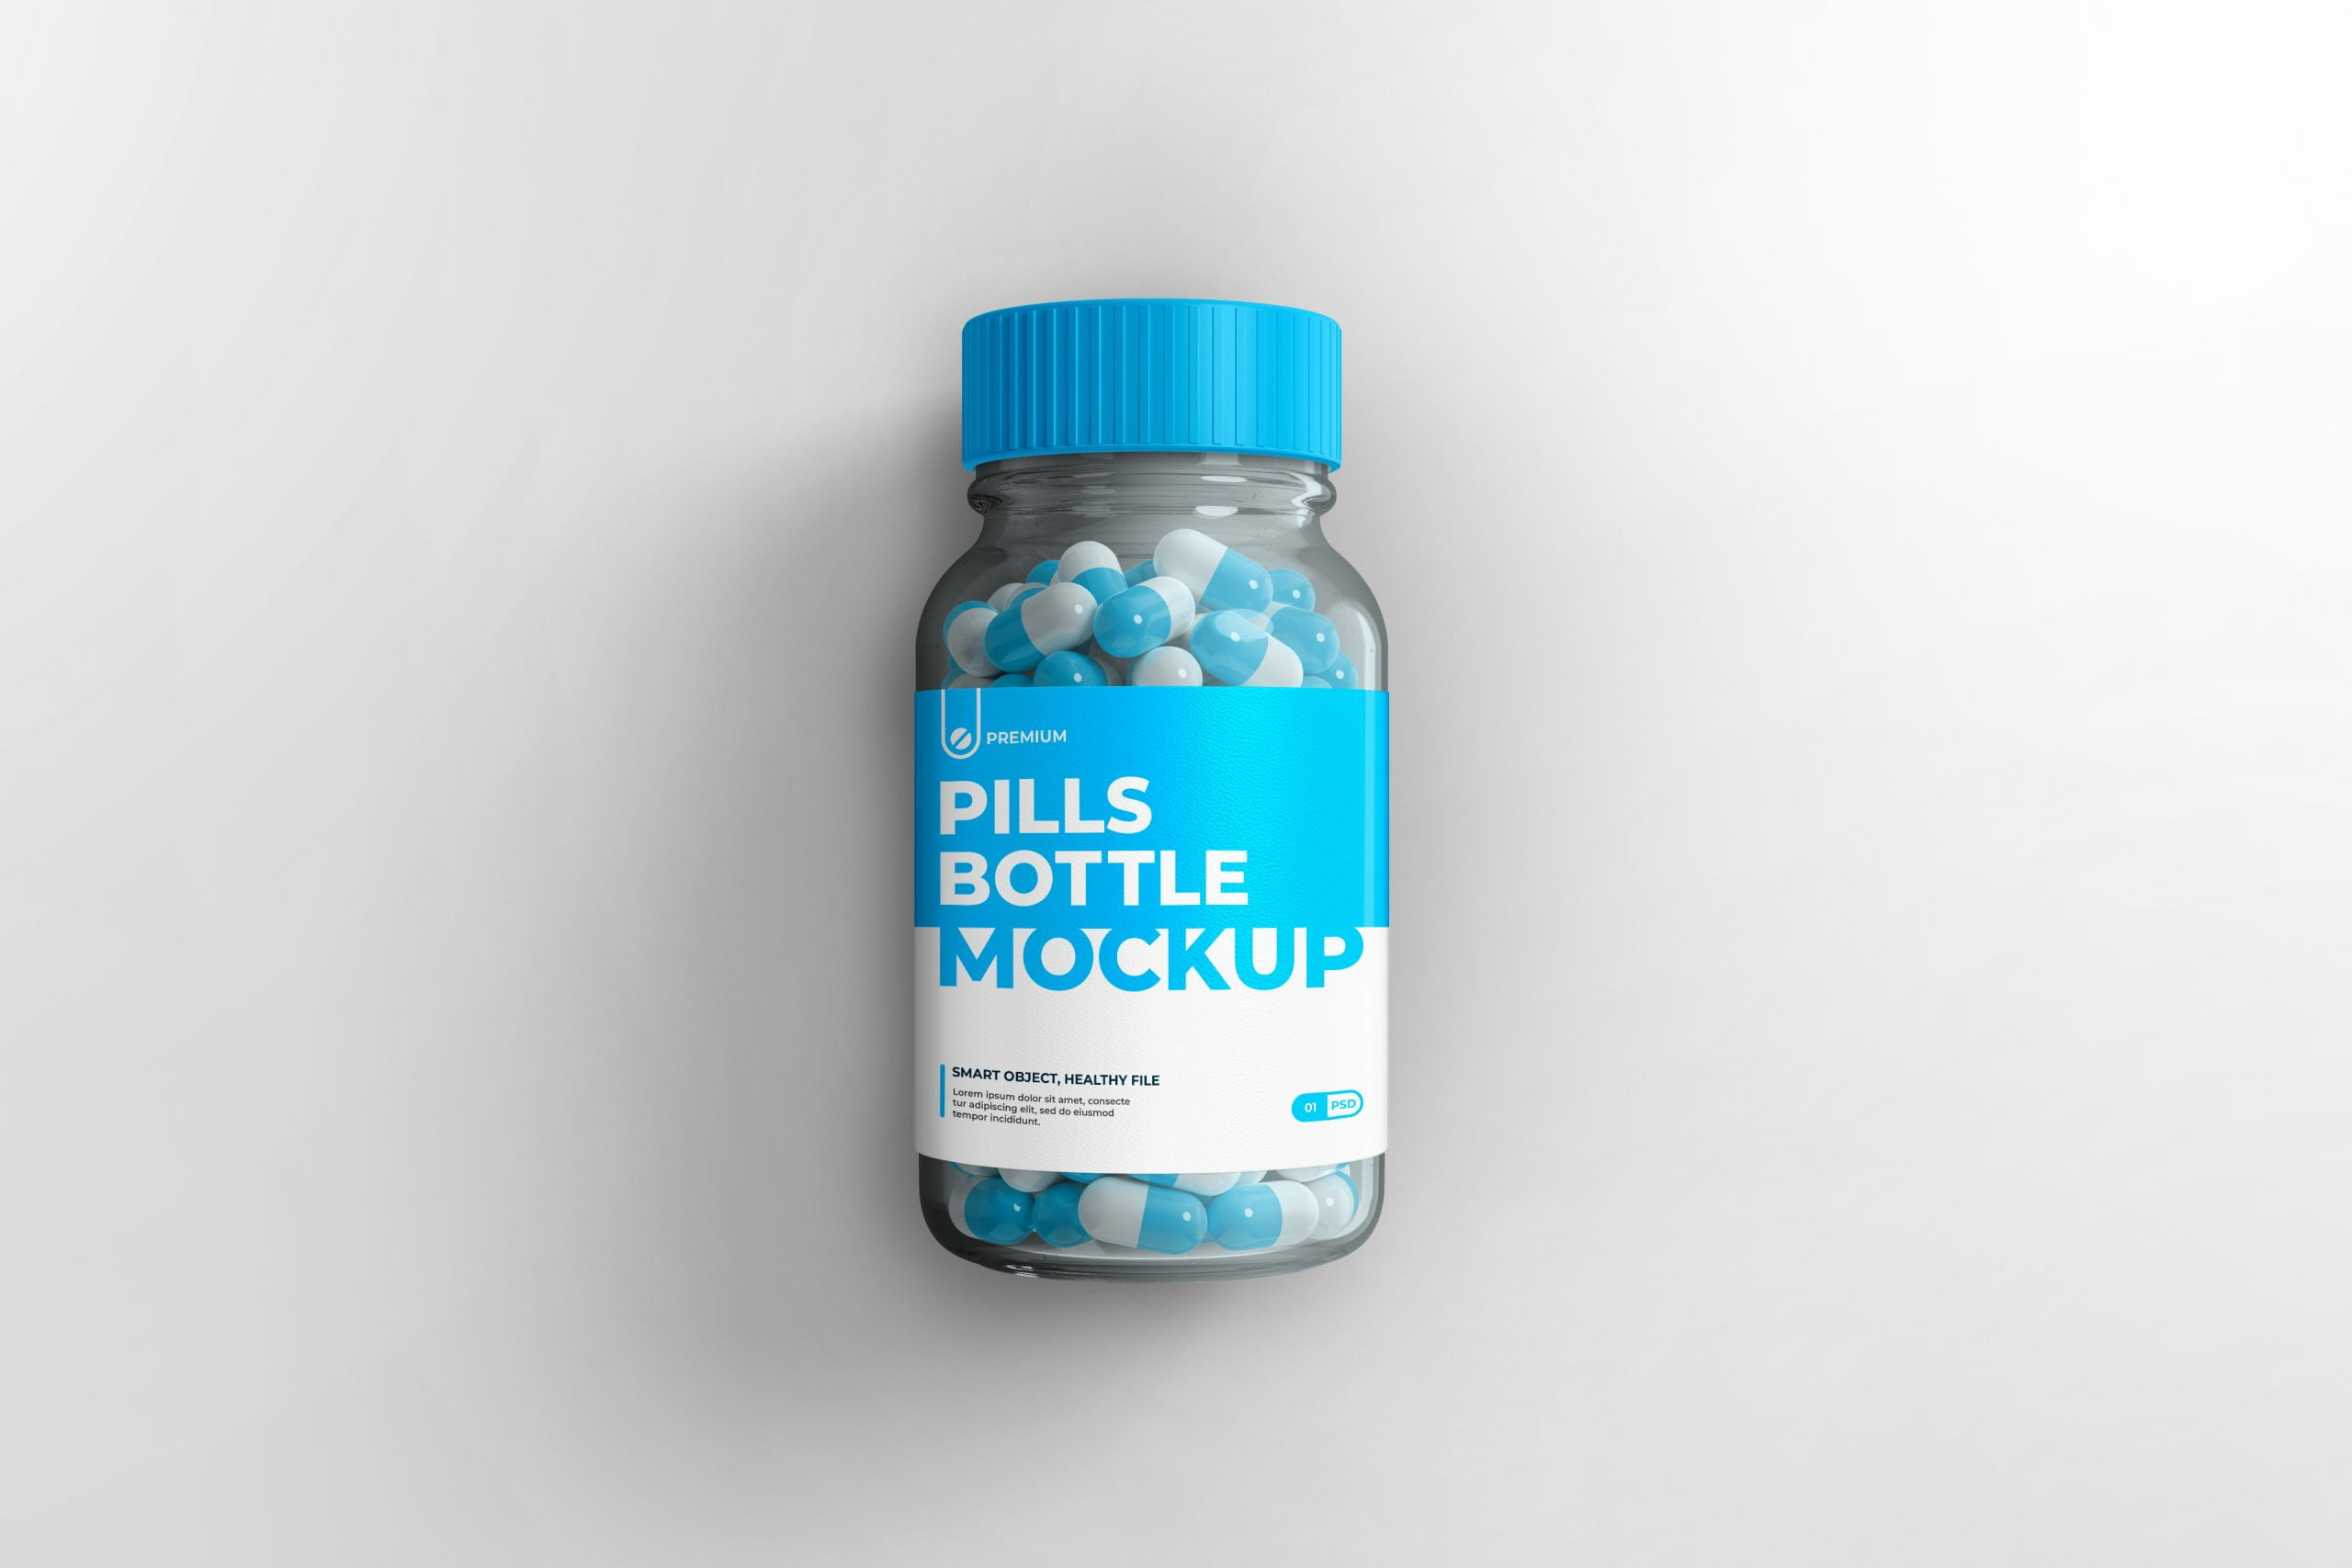 Pill-Medicine-Bottle-Mockup-by-GraphicsFamily